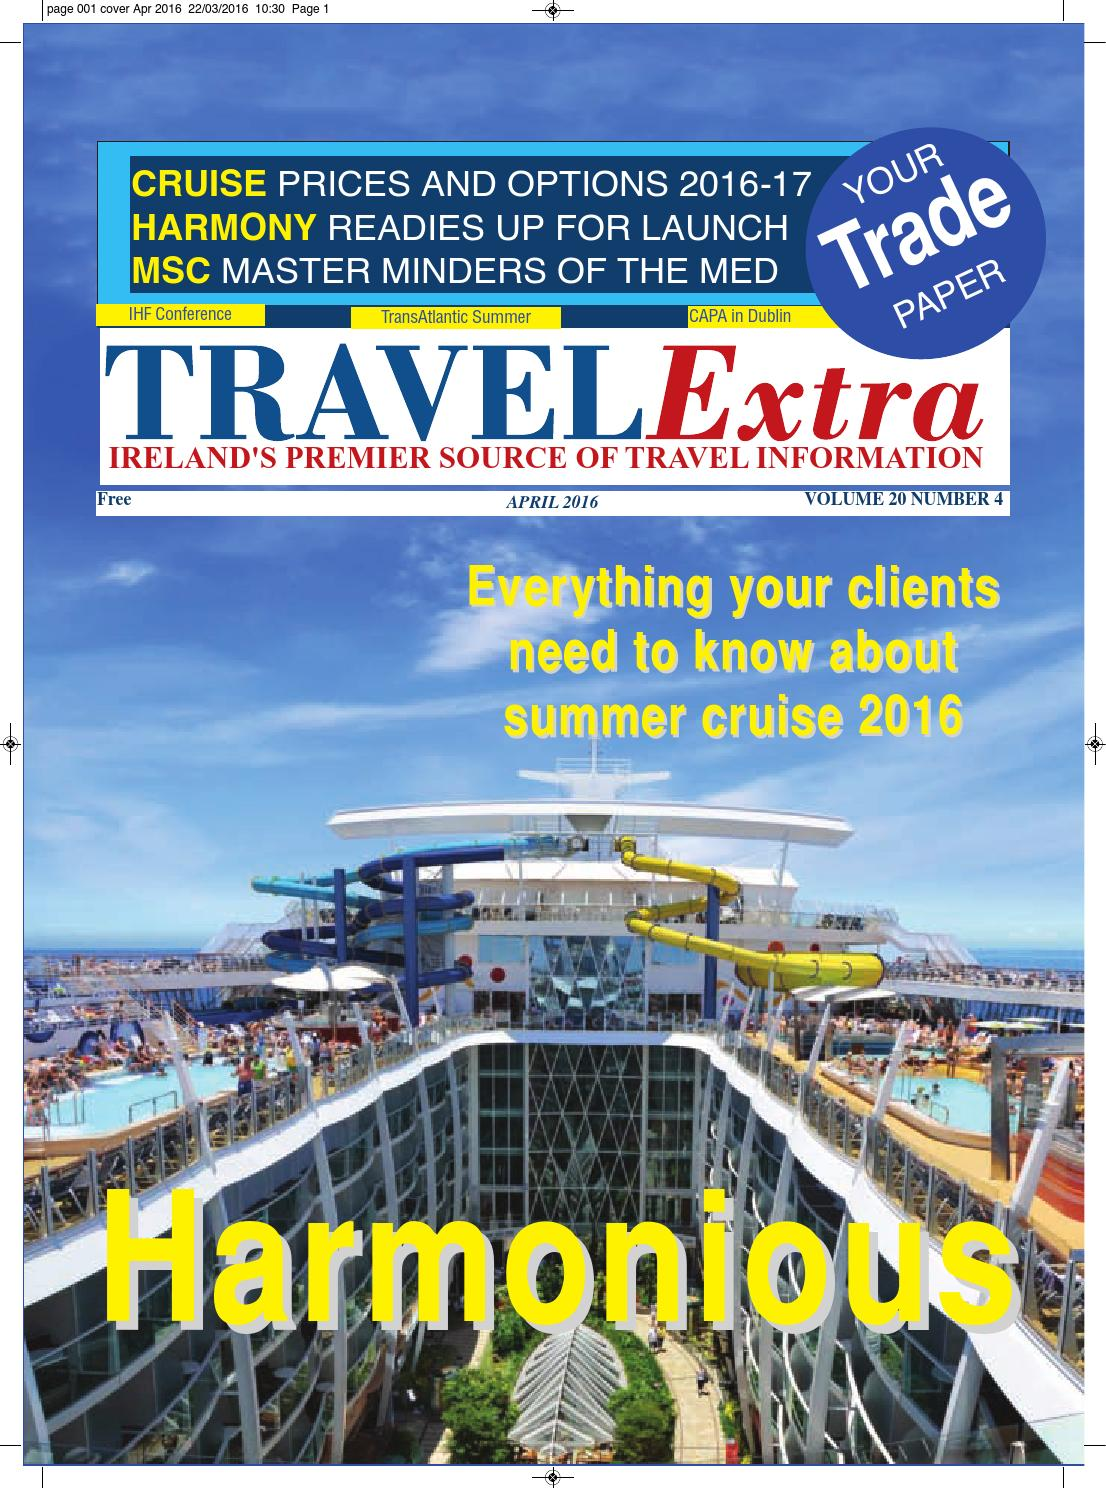 Travel Extra April 2016 by Travel Extra - issuu